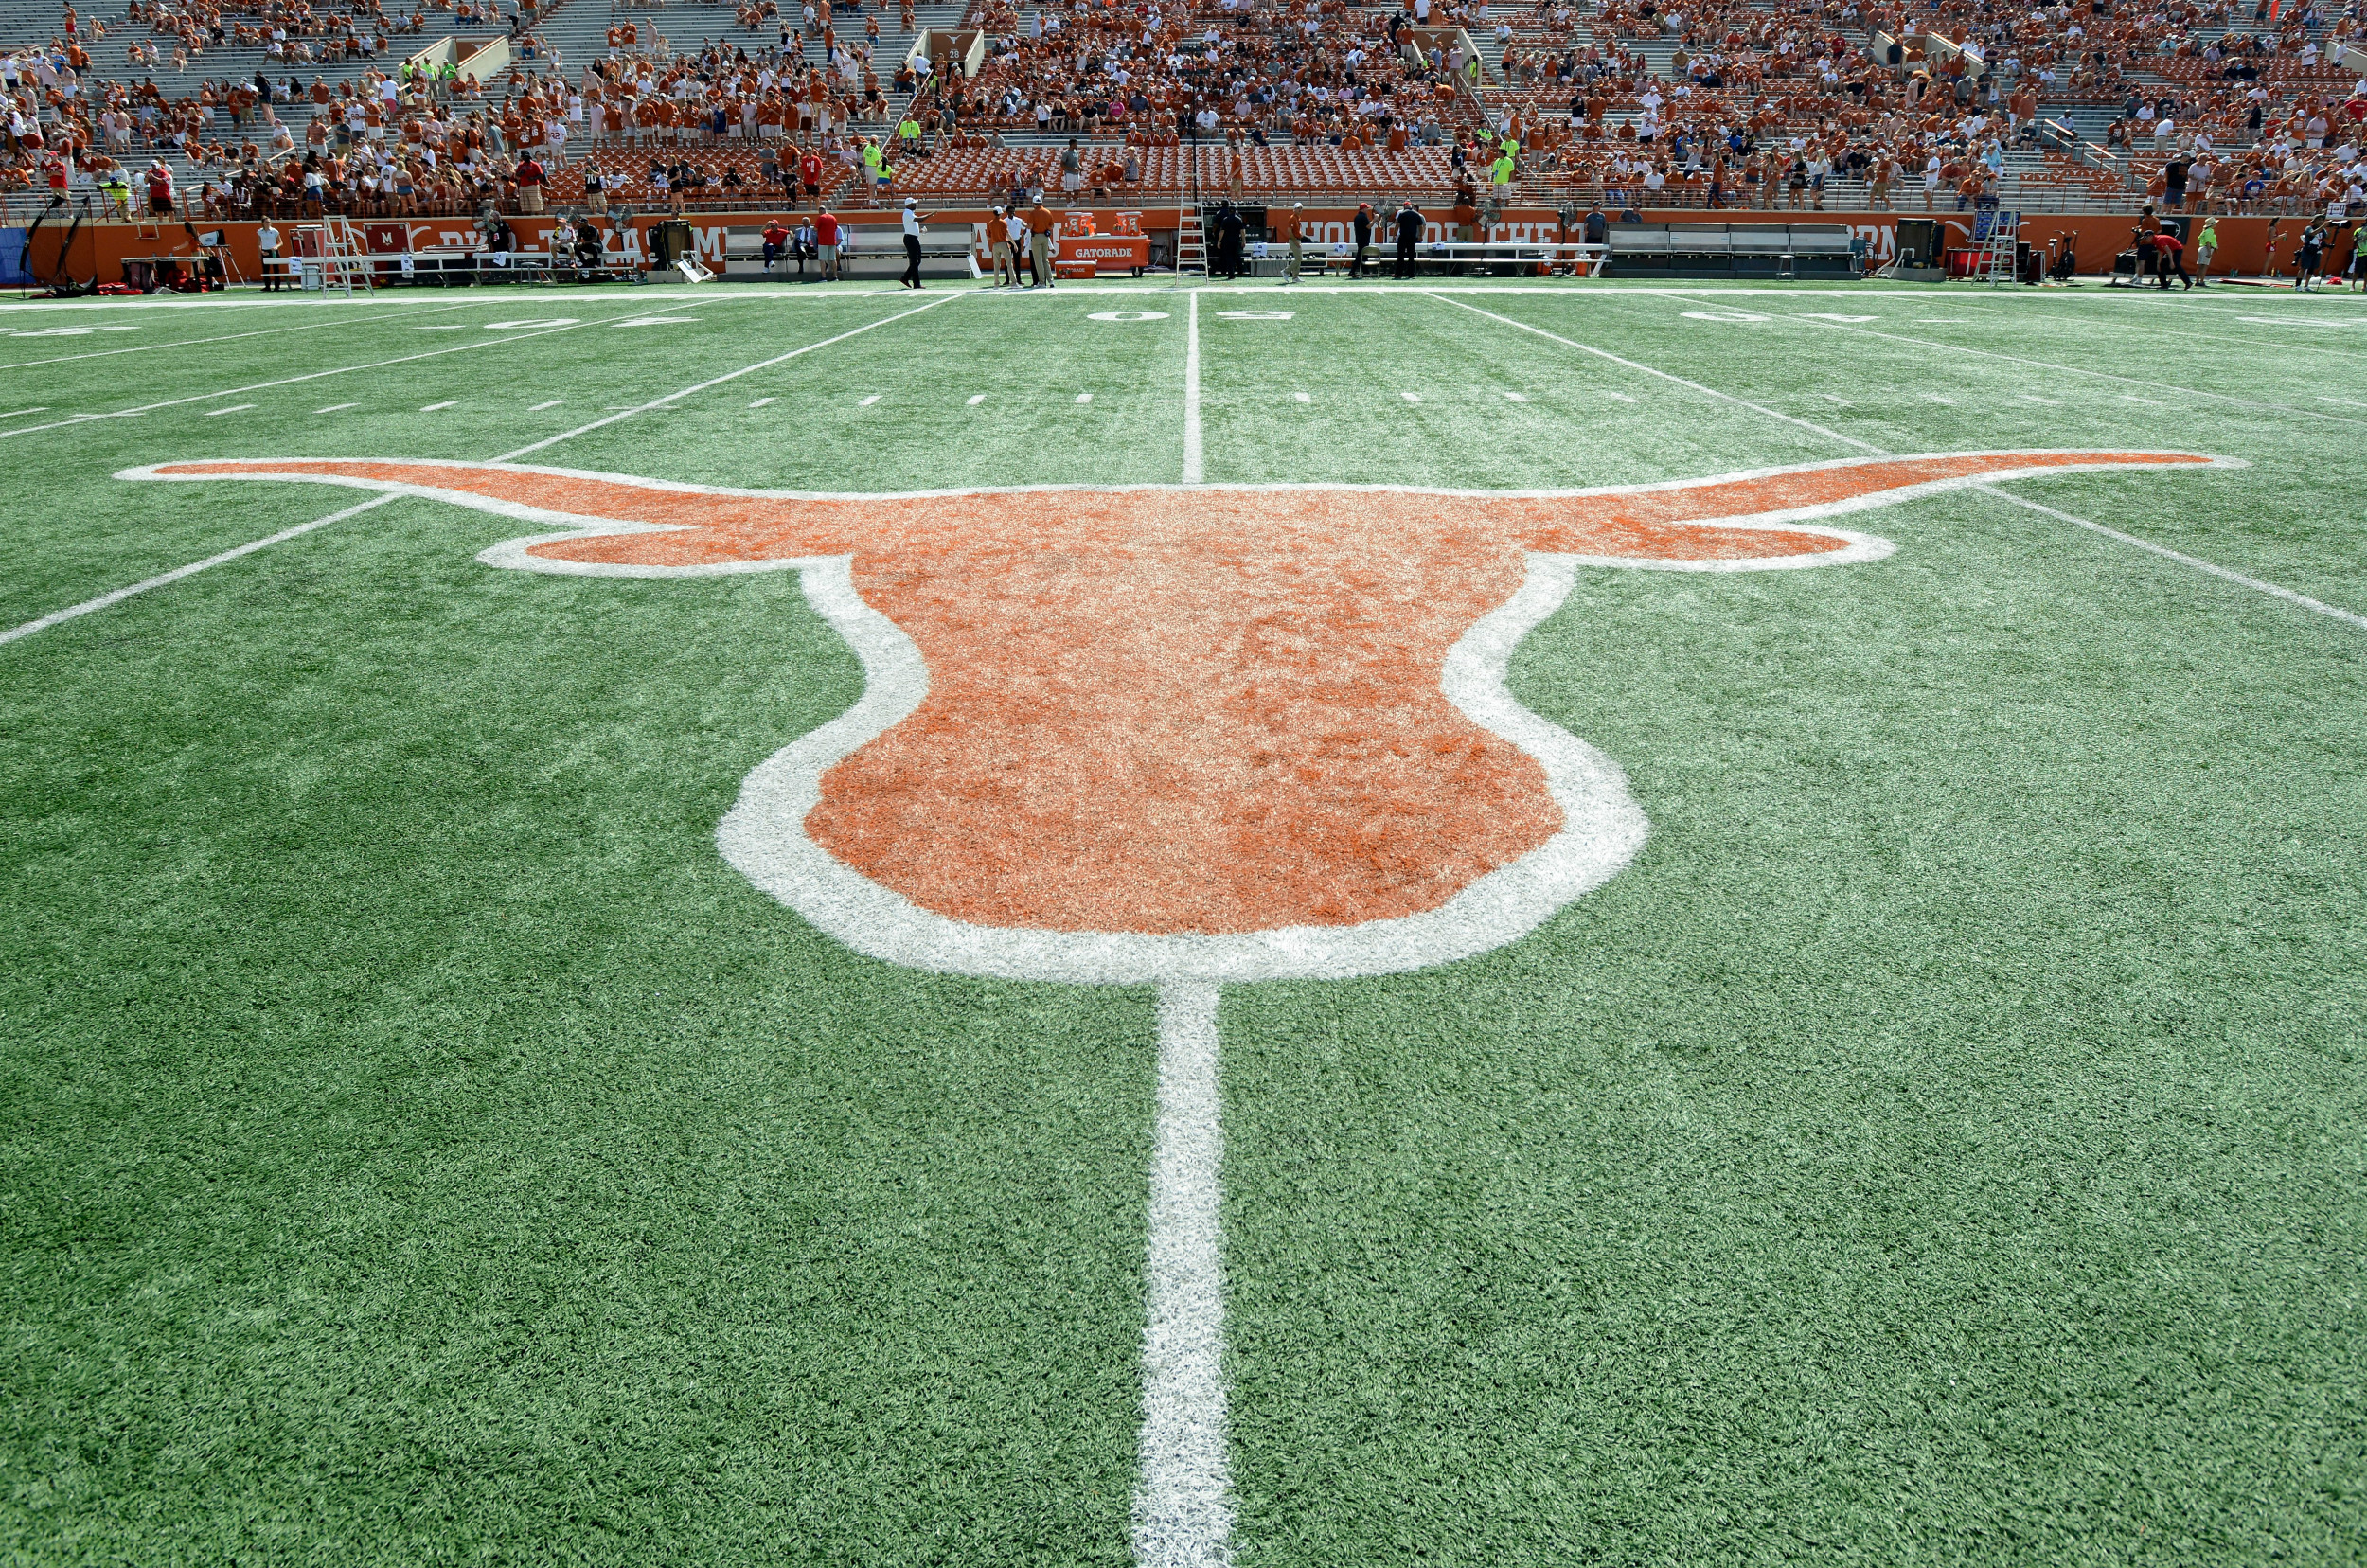 UT Creating Separate Band That Won't Perform 'The Eyes of Texas'